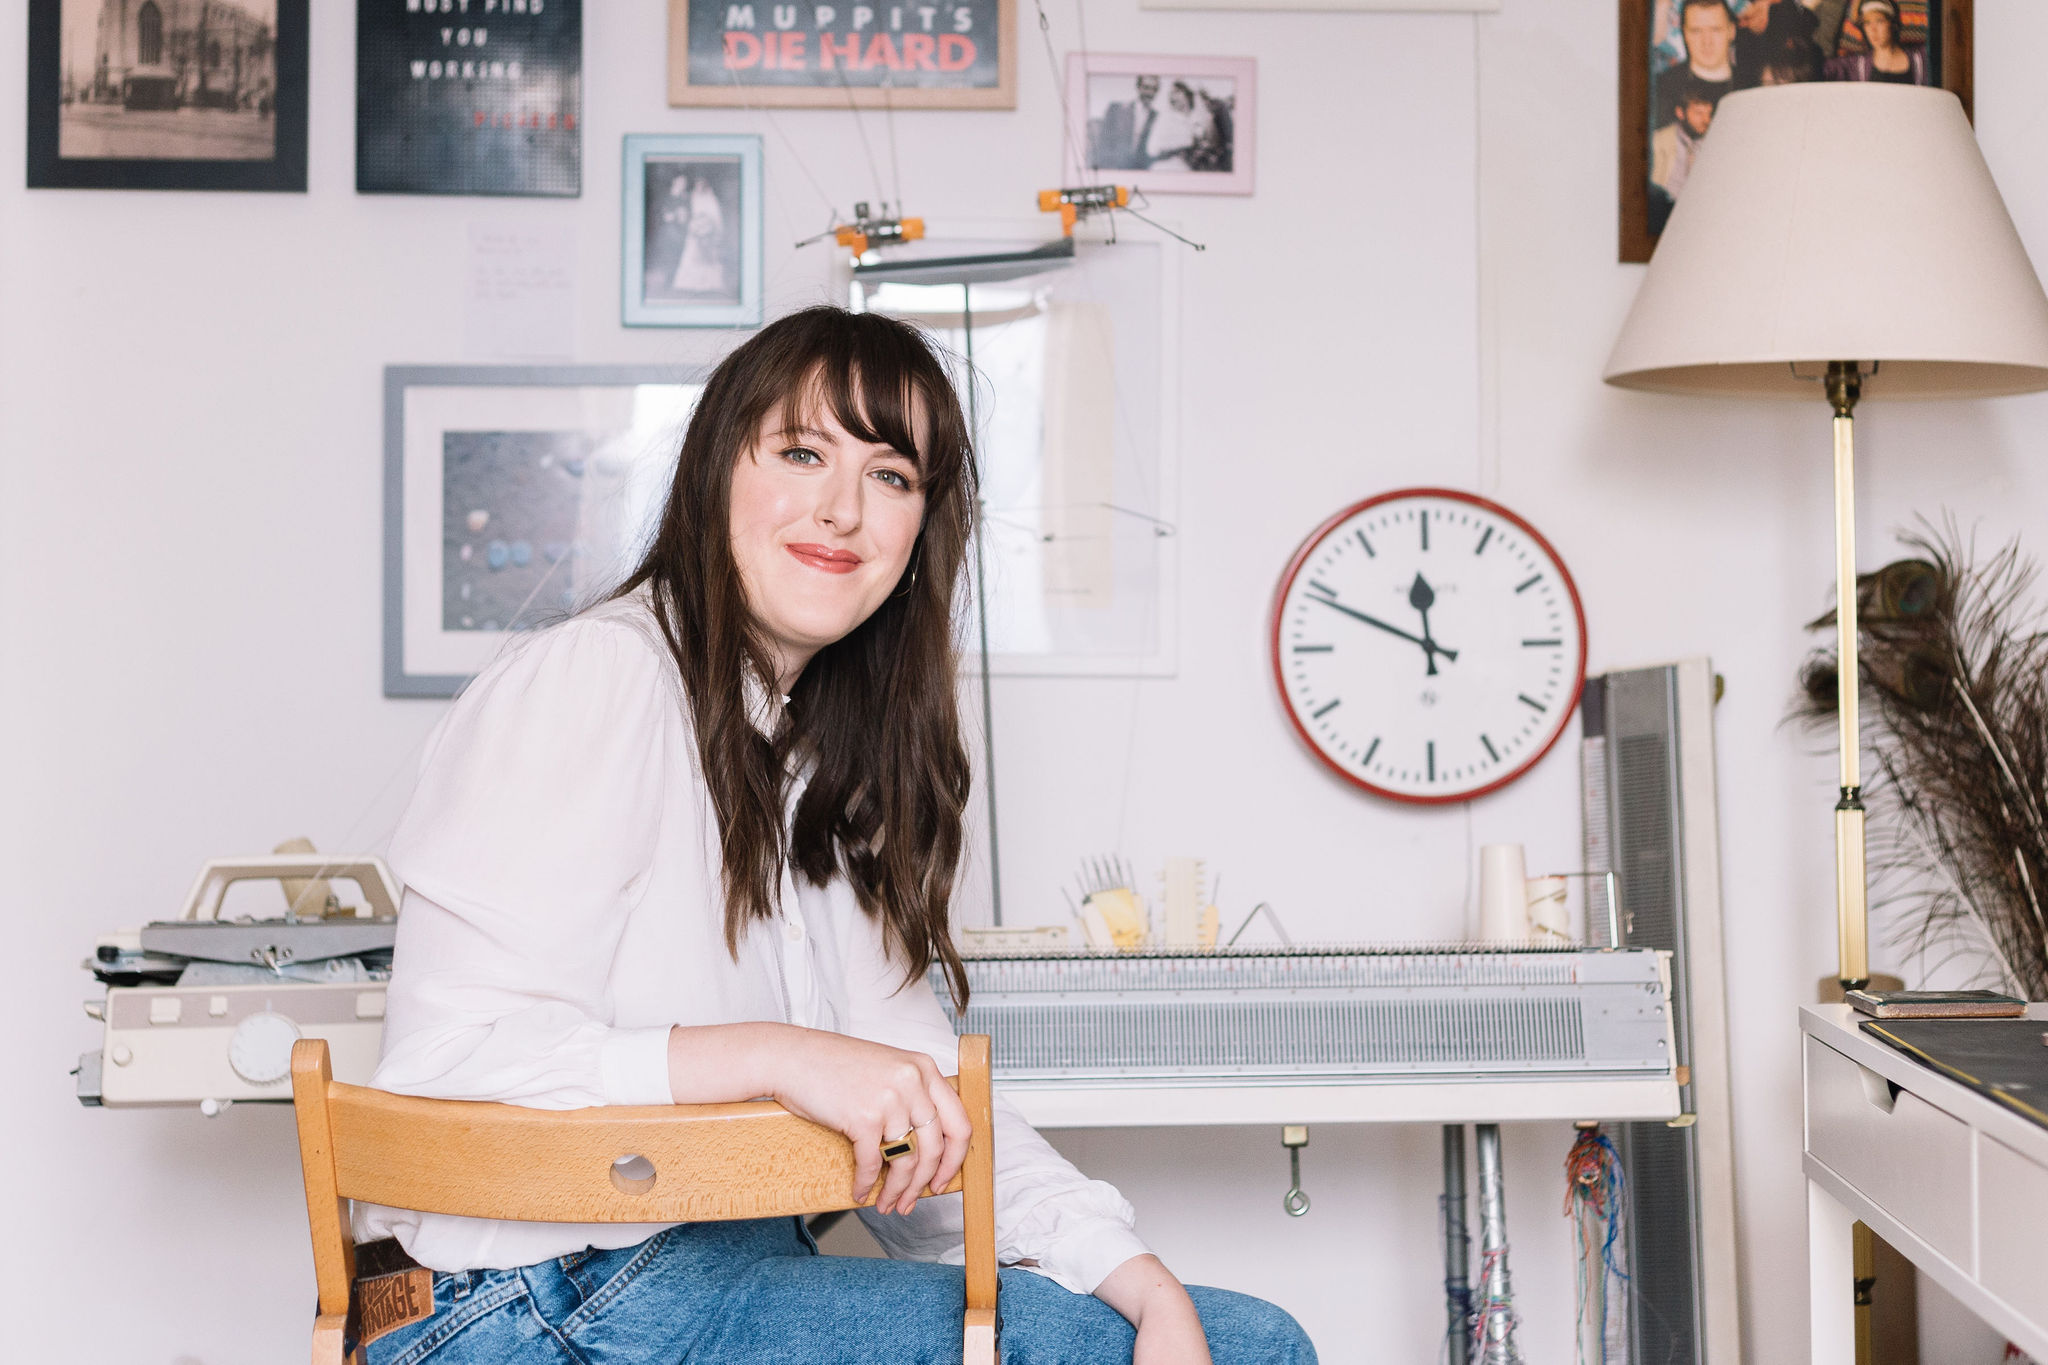 Amber Hards sitting in a chair in front of her knitting machine